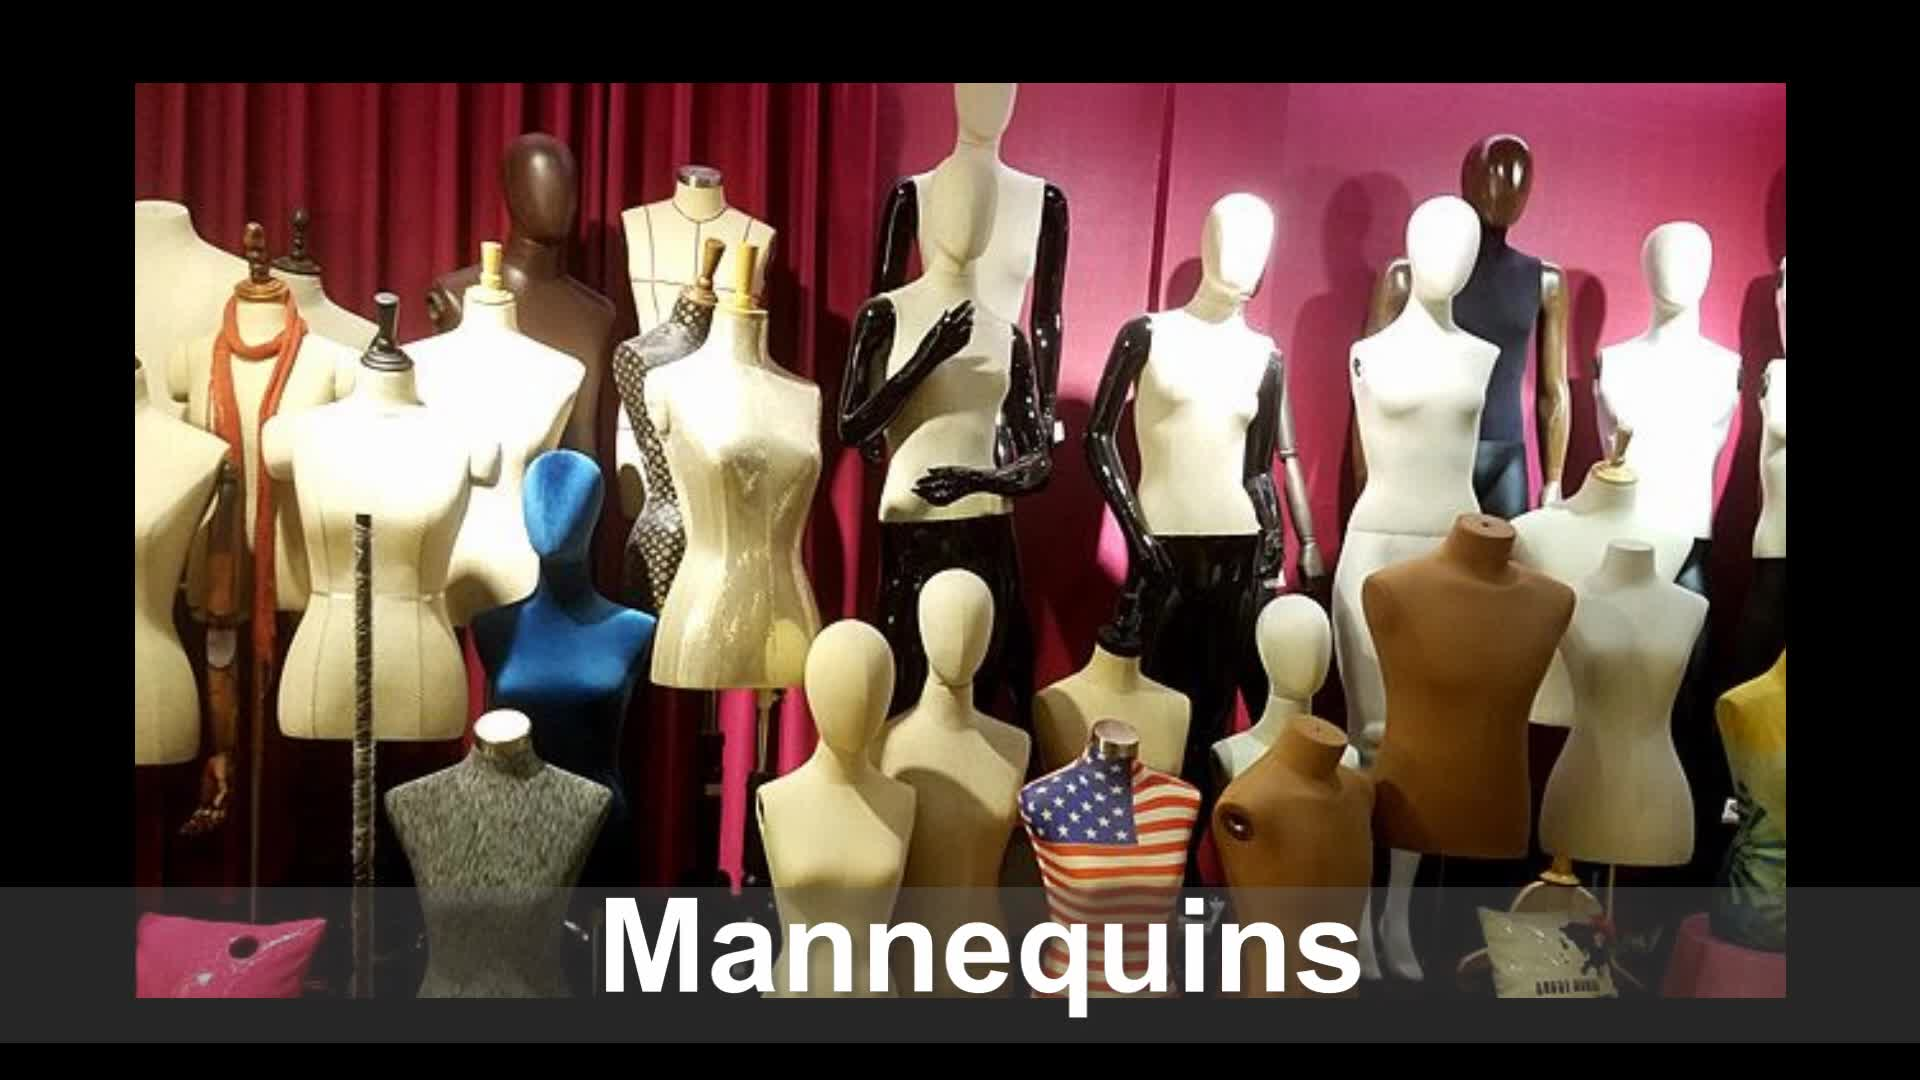 Full body glossy female mannequins for shop display